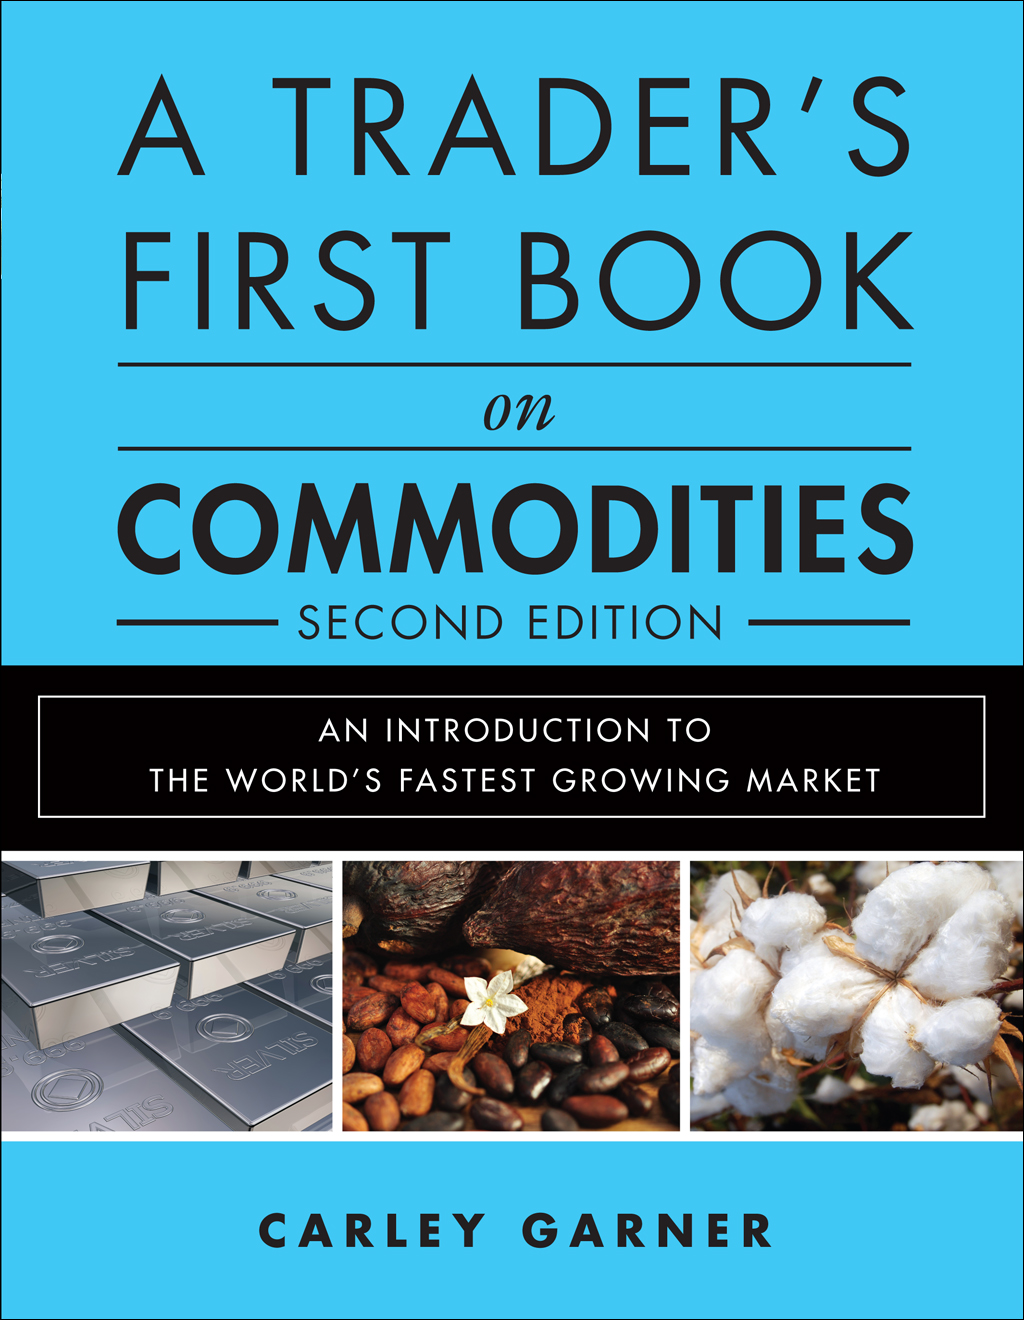 A Trader's First Book on Commodities, second edition